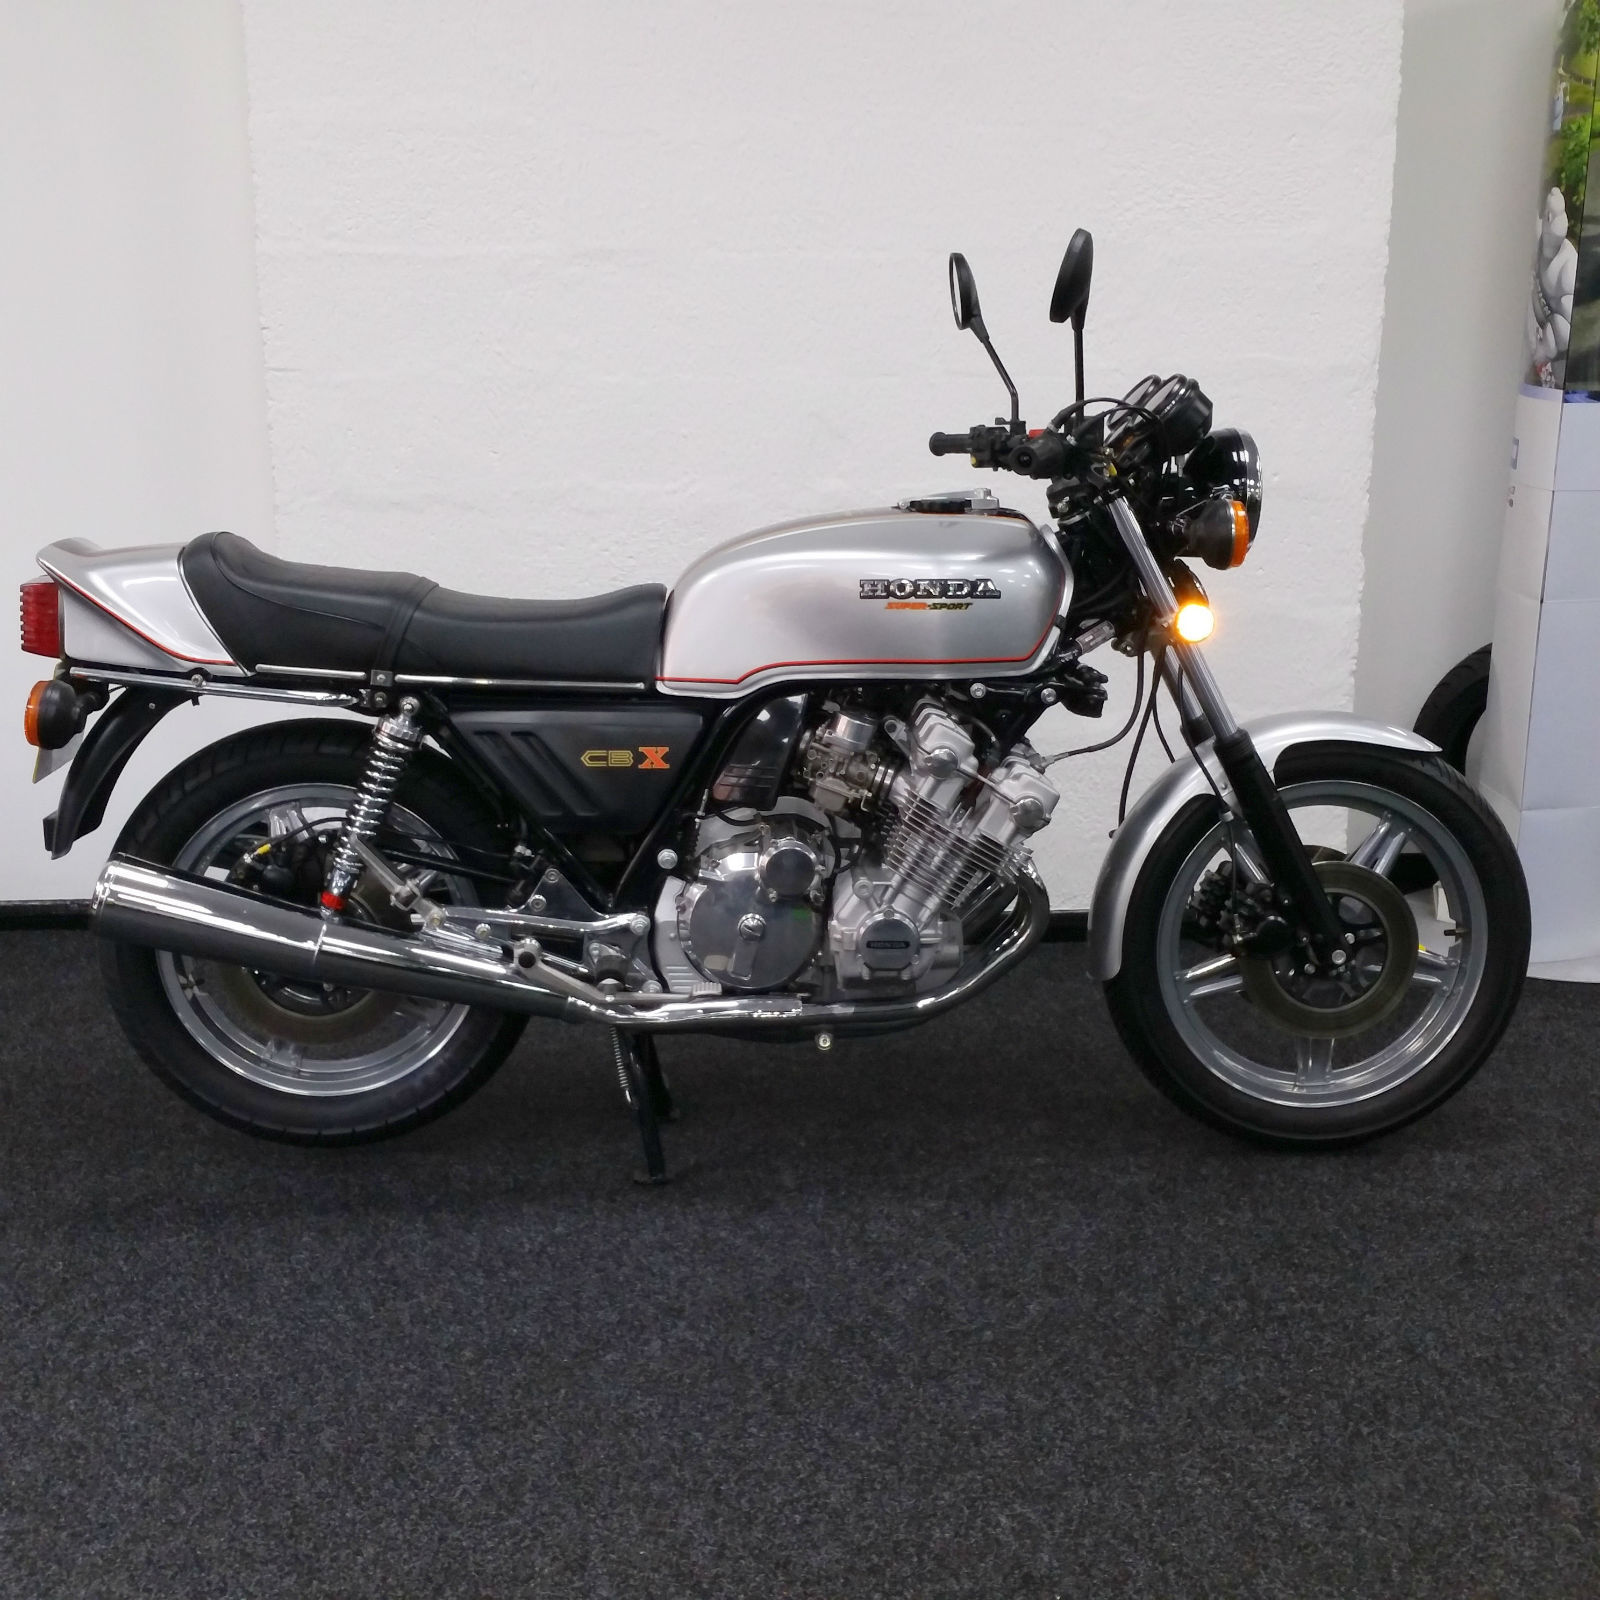 Honda CBX1000 - 1978 - Right Side View, Exhaust System, Gas Tank, Seat, Frame and Forks.